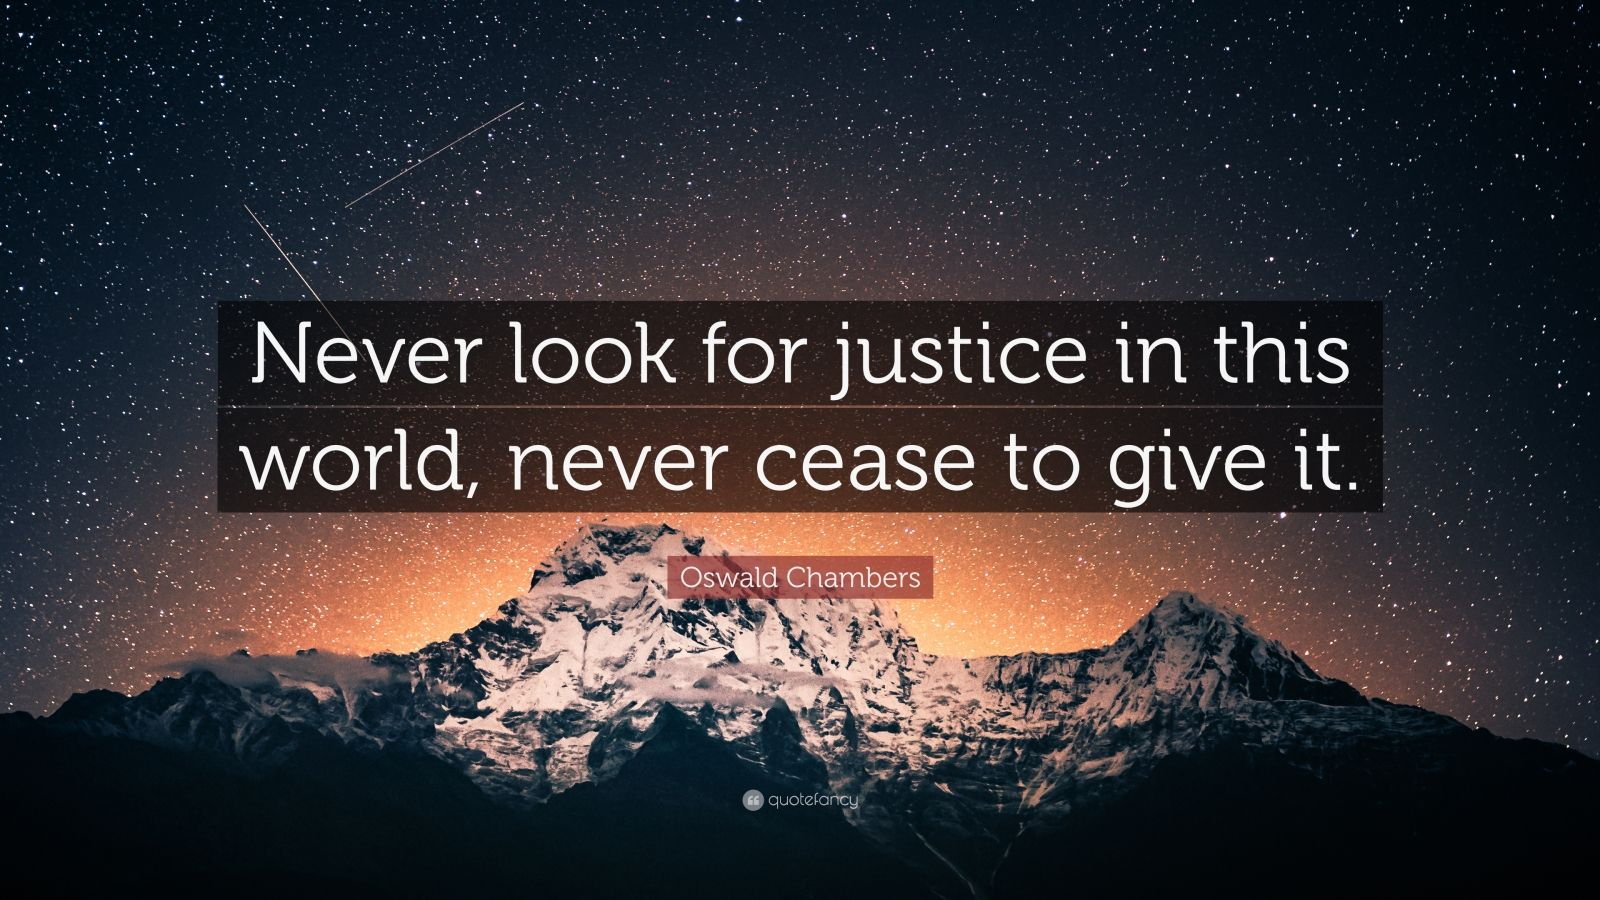 """Oswald Chambers Quote: """"Never look for justice in this world, never cease to give it."""""""